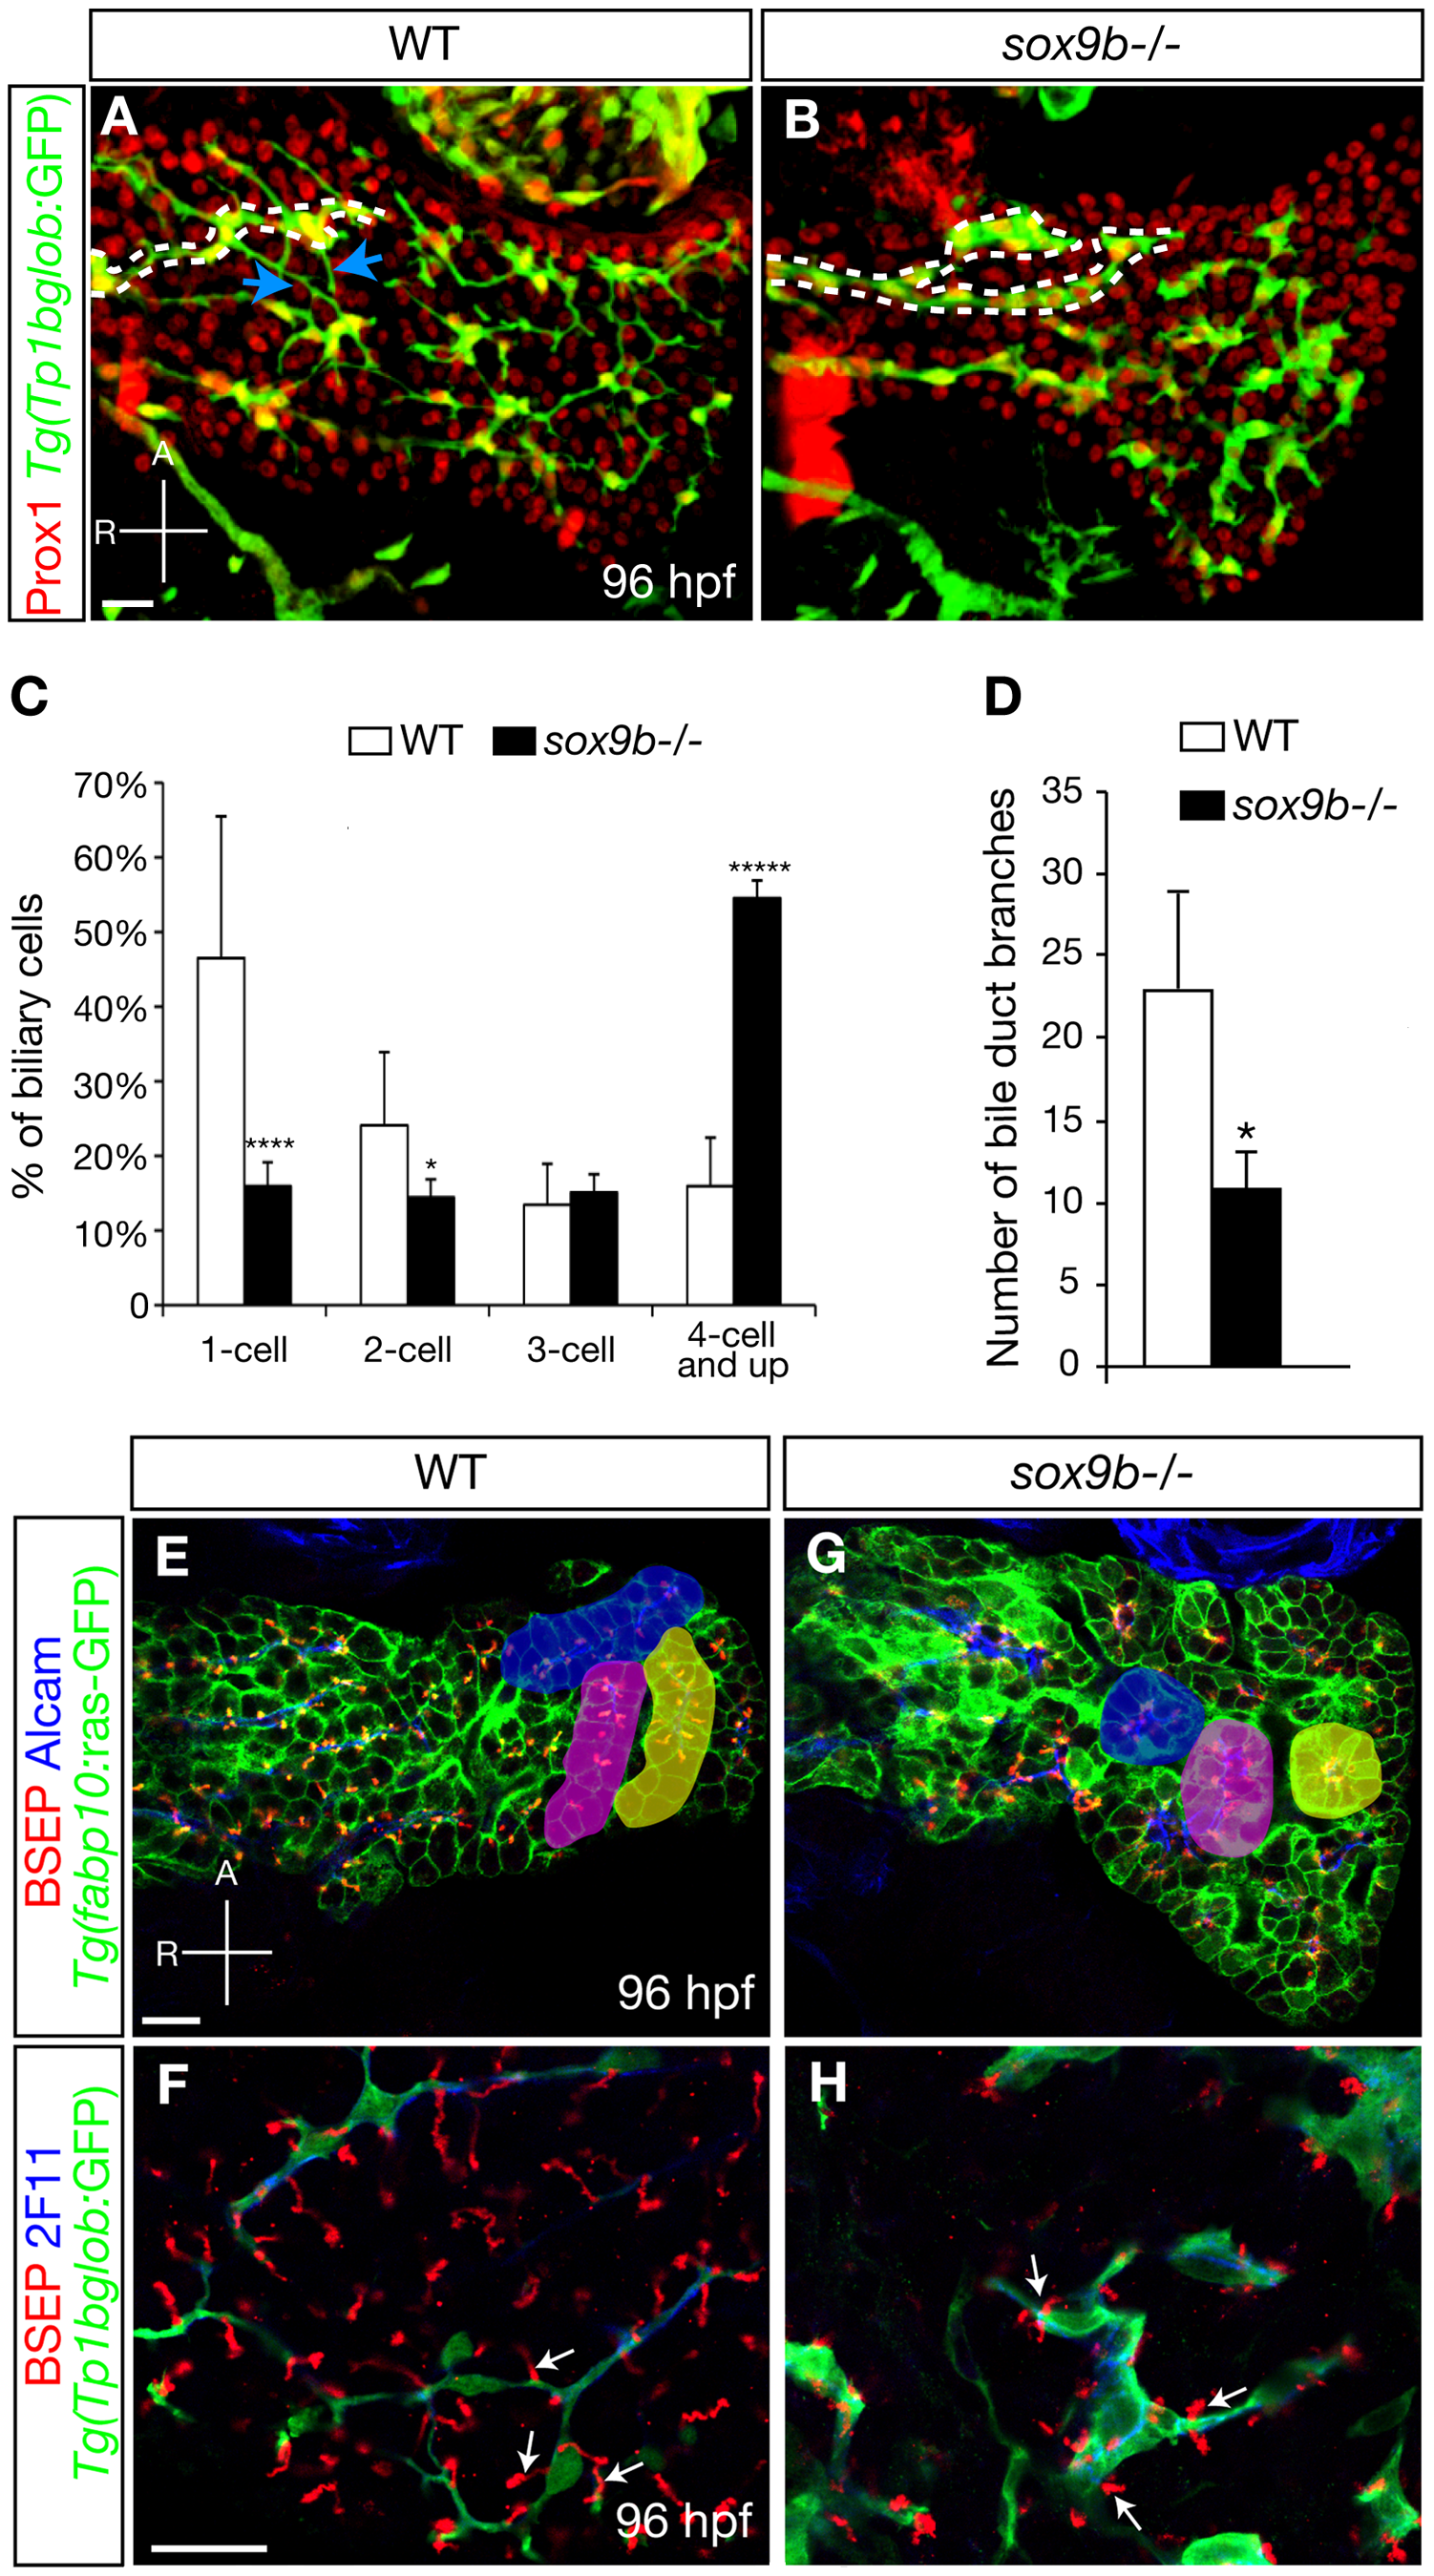 Intrahepatic biliary network morphogenesis and bile canaliculi formation are impaired in <i>sox9b</i> mutants.